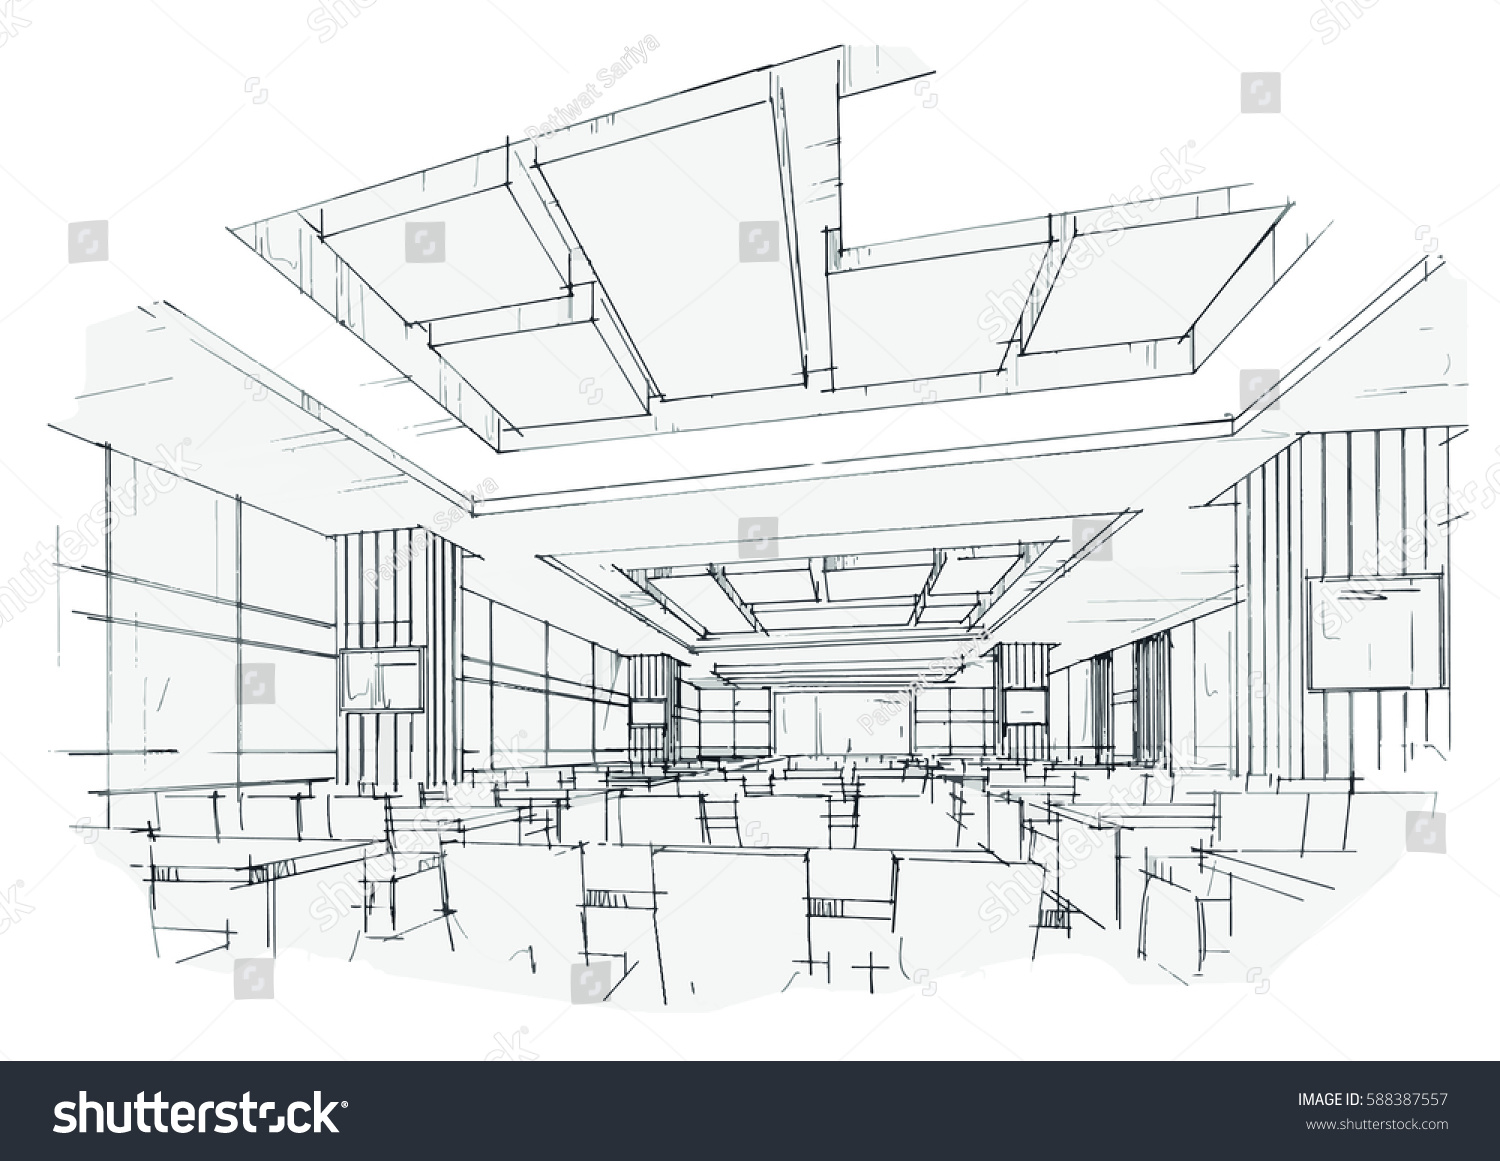 Classroom Design Sketch ~ Sketch streaks classroom black white interior stock vector